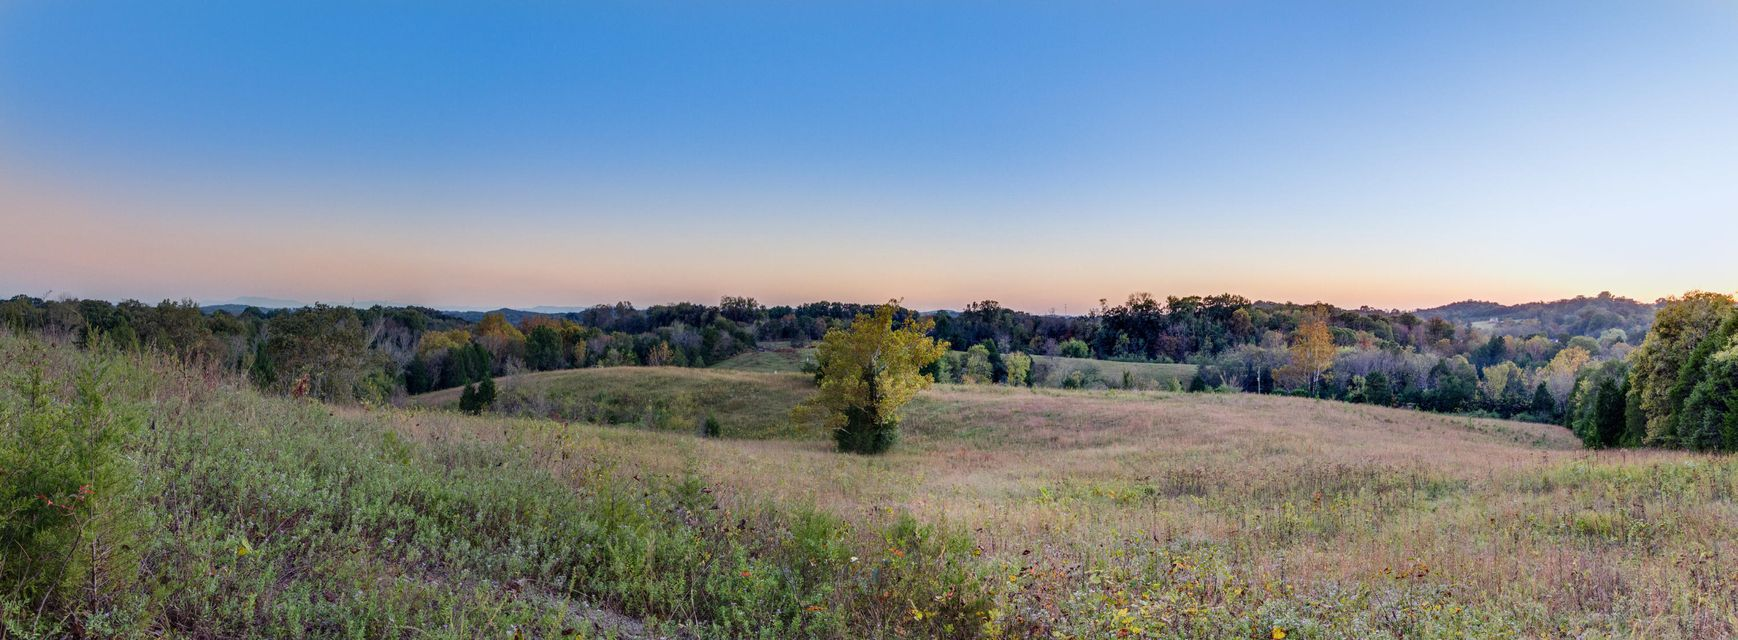 Land for Sale at 400 Big Bend Road 400 Big Bend Road Strawberry Plains, Tennessee 37871 United States